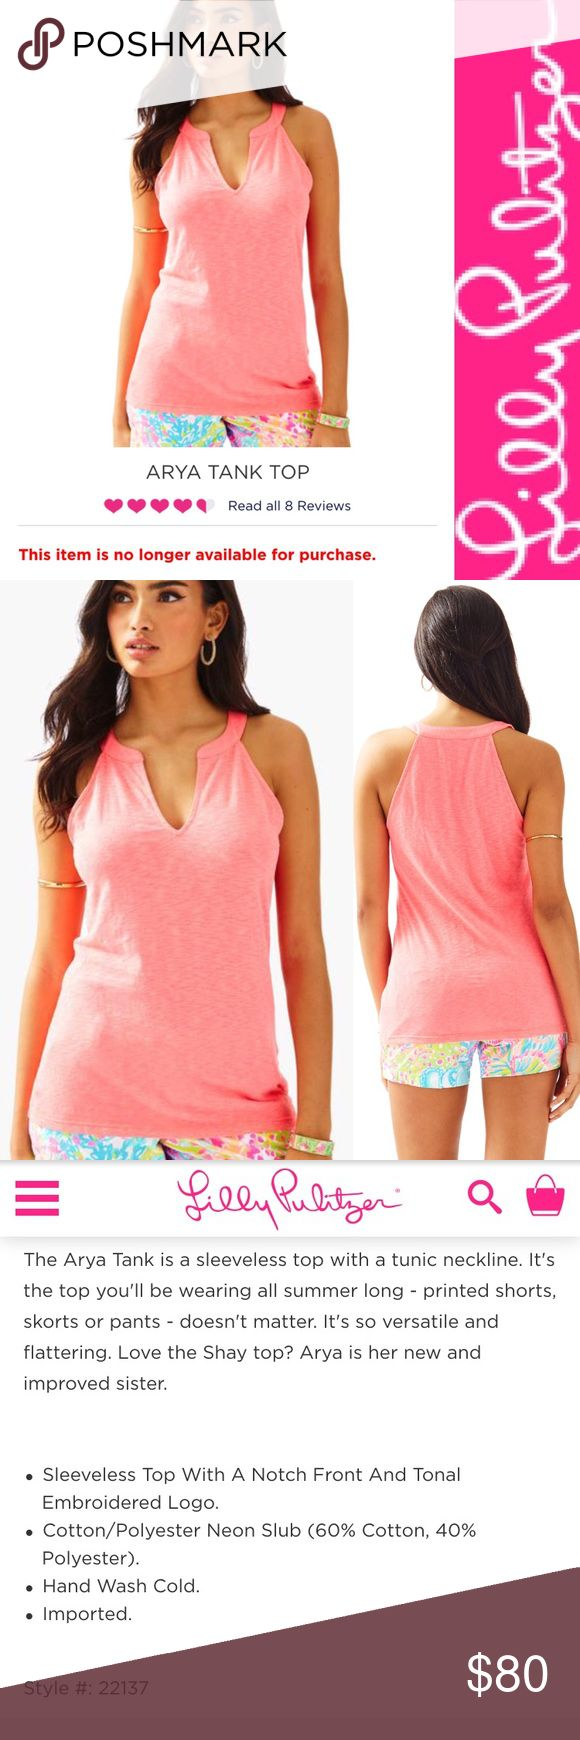 XL NWT Lilly Pulitzer Arya Tank - Pink Sun Ray XL Lilly Pulitzer Arya Tank - Pink Sun Ray. Style #22137 - OUT OF STOCK item!!! Note: Lilly website reviews say it runs slightly large. If you love the Shay Top, Arya is her new & improved sister. (Pink sun ray color is like coral, very pretty!) model image & item info from Lilly website and actual item pictured. NO TRADES PRICE FIRM. Thx for shopping my closet 💞 ****not eligible for bundle discount. Lilly Pulitzer Tops Tank Tops